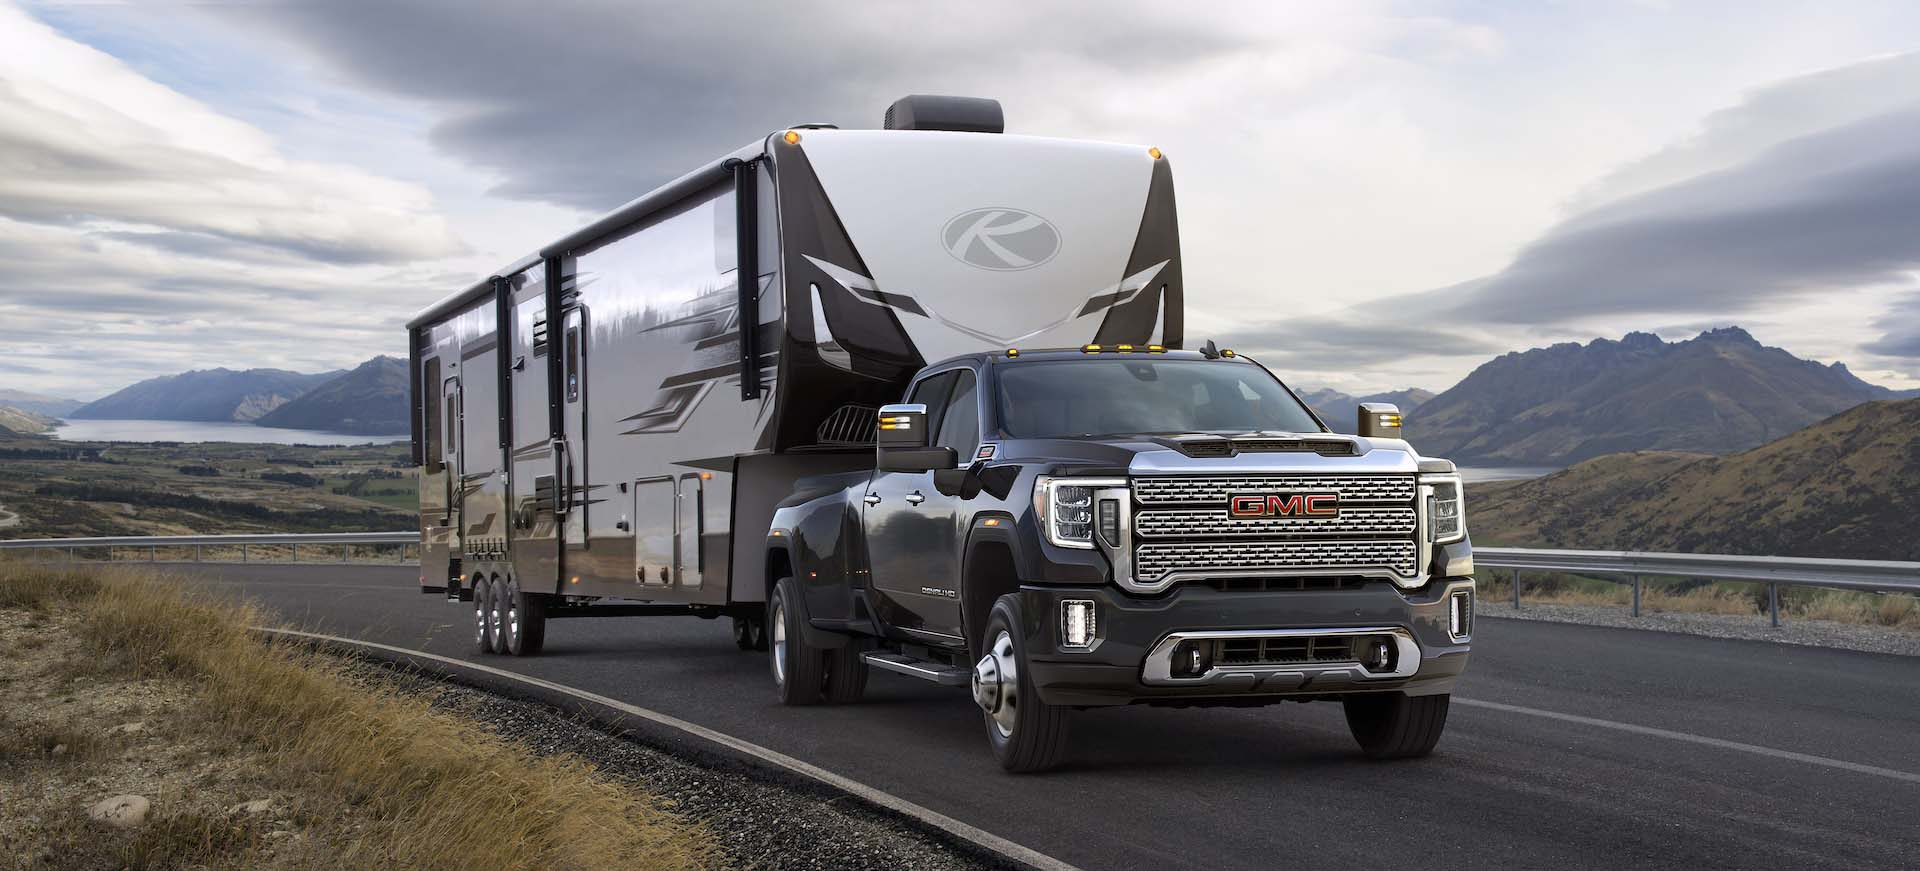 2020 GMC Sierra 2500 Heavy Duty revealed: Tech-focused ...